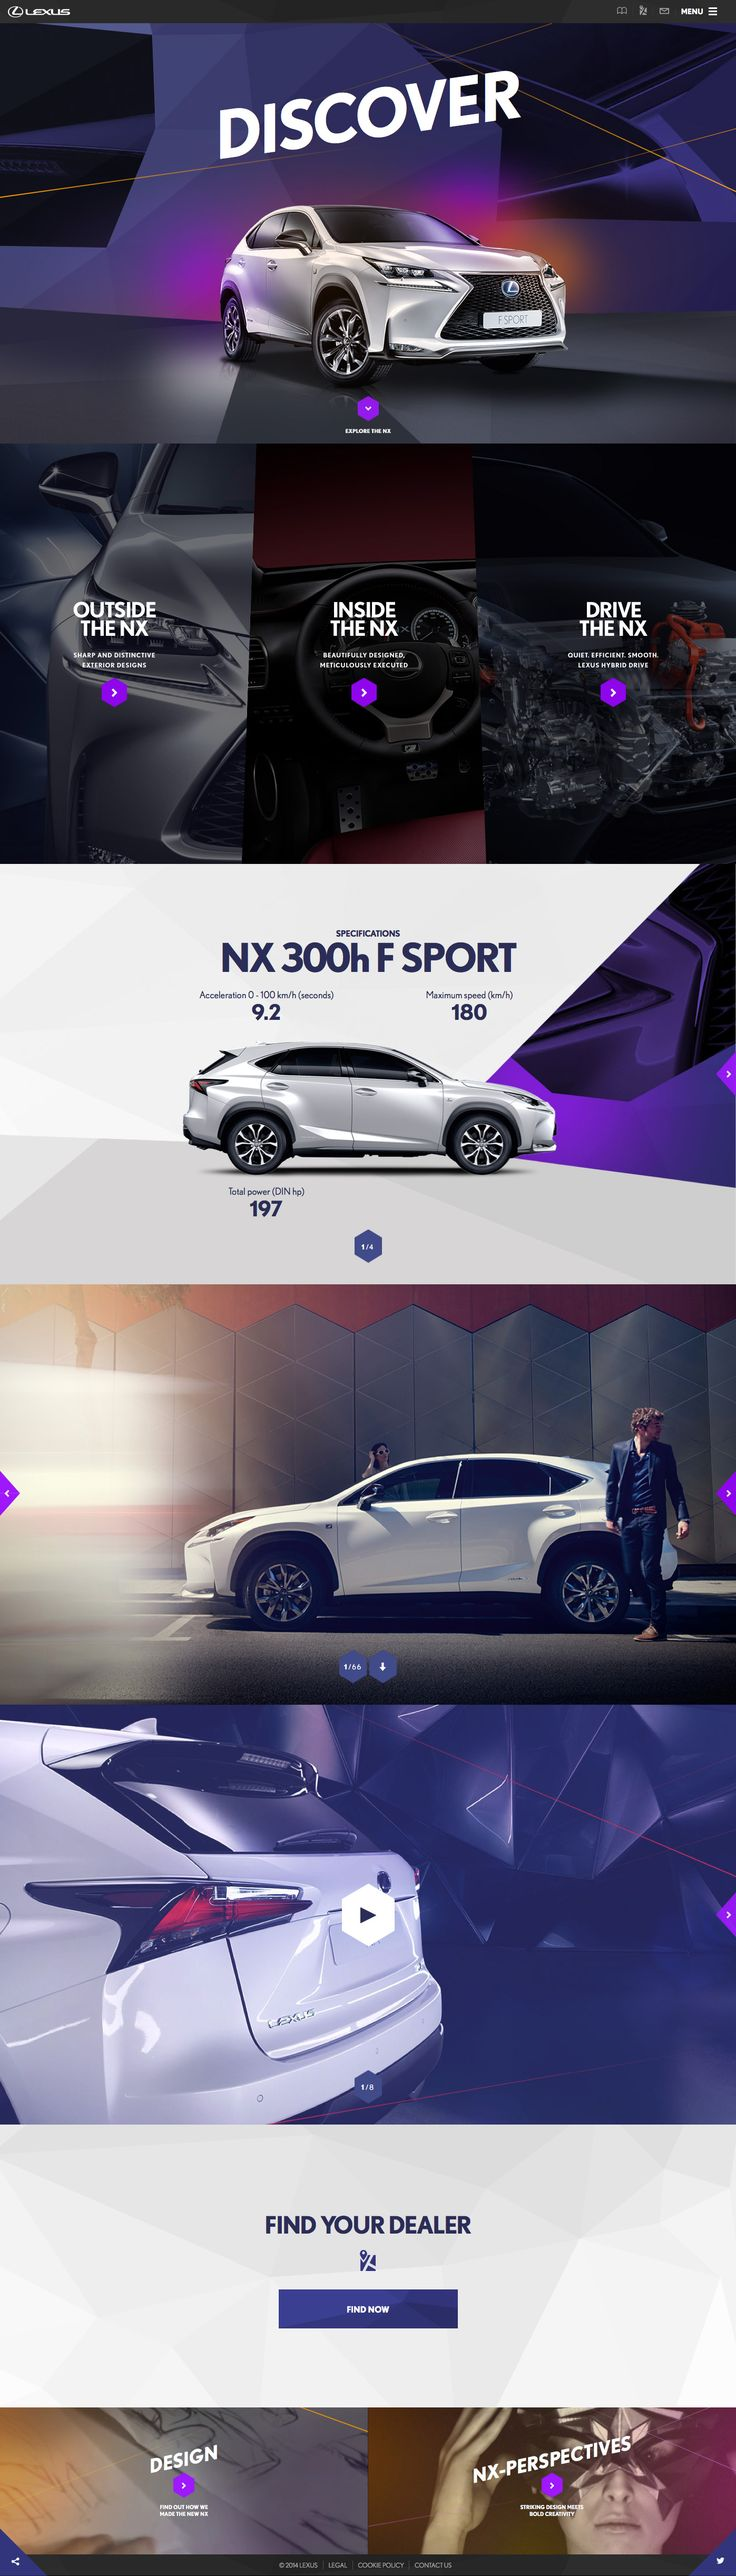 Discover - Lexus #ui #interface #web